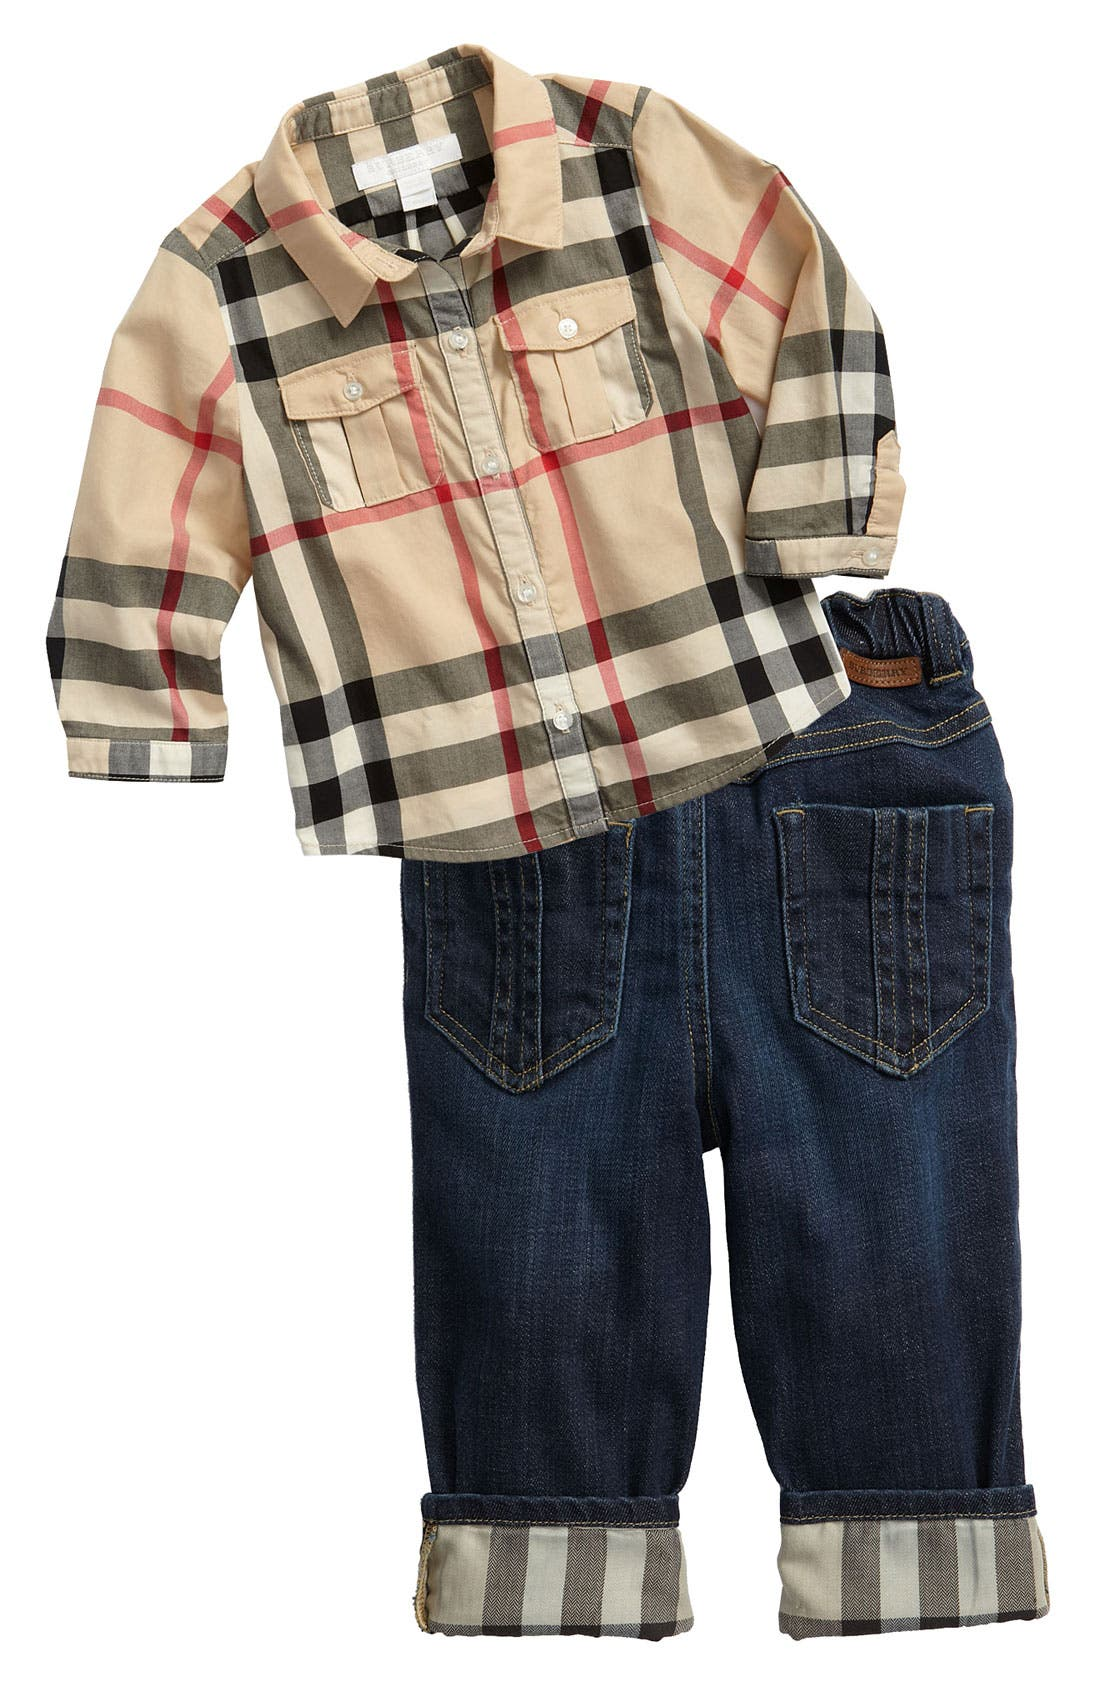 Alternate Image 1 Selected - Burberry Shirt & Jeans (Infant)